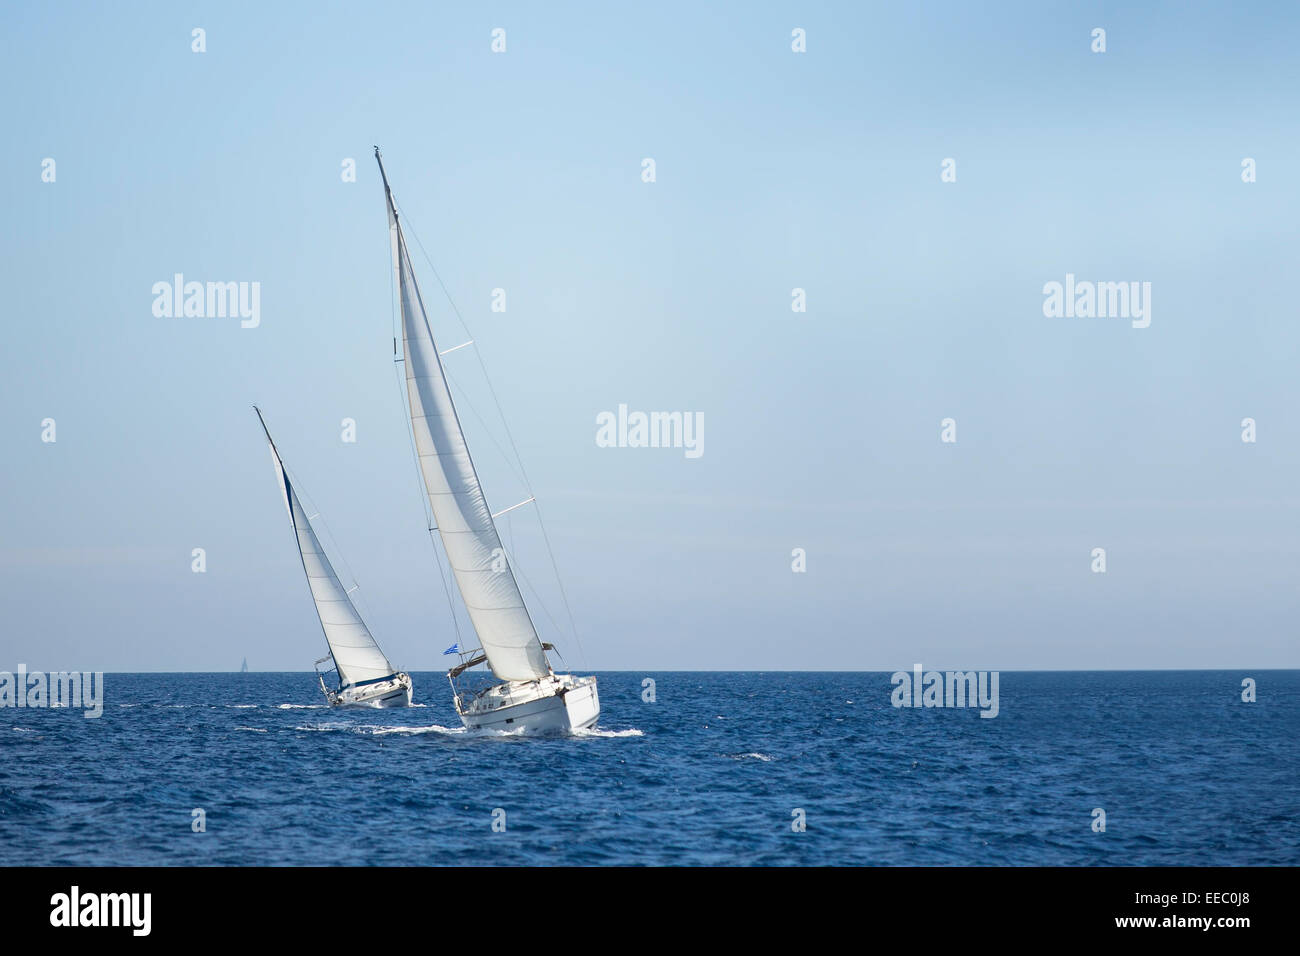 Two sailboats on the sea. Sailing. Luxery yachts. - Stock Image